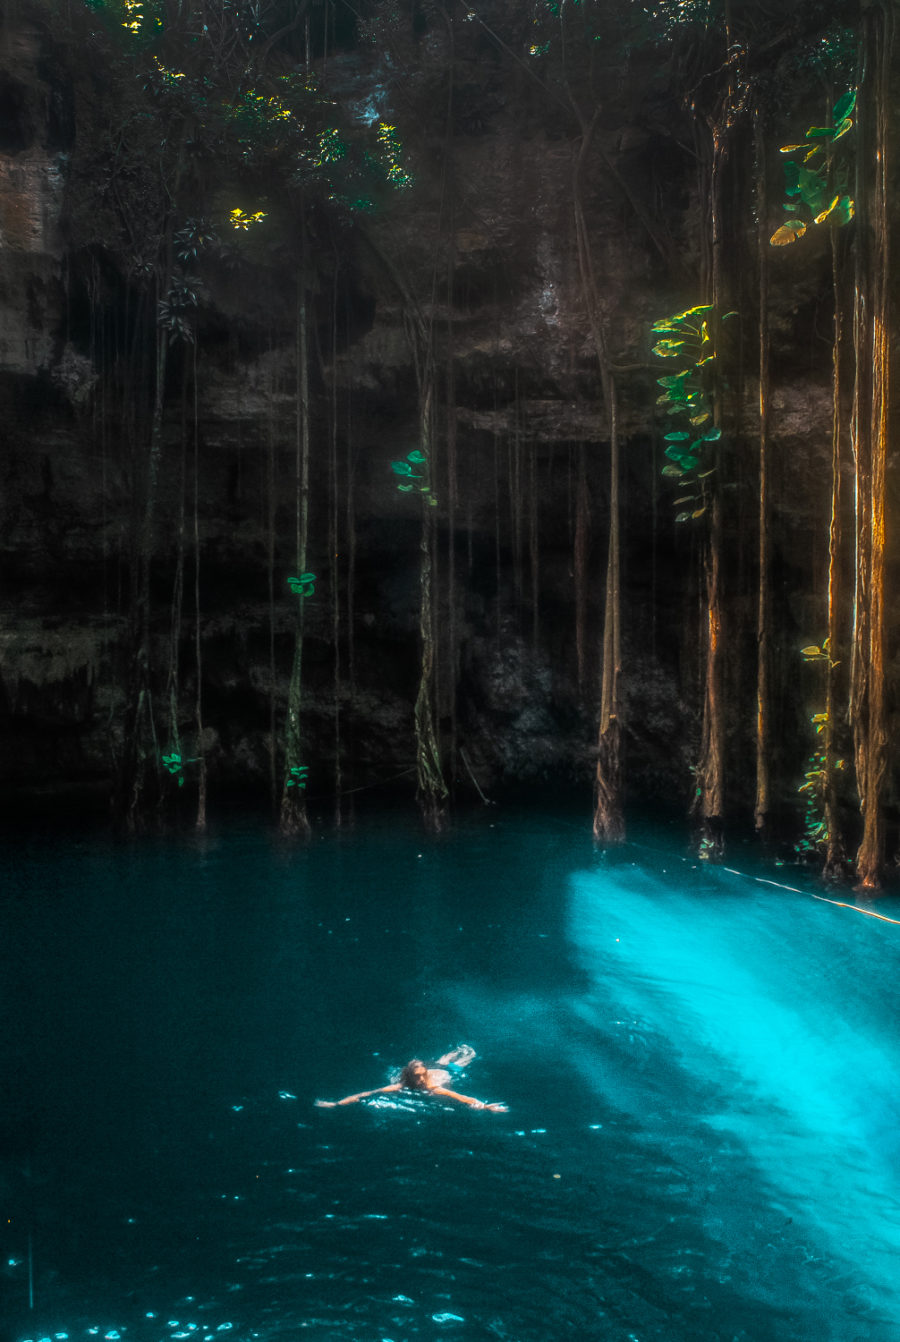 Looking for the best cenotes in Valladolid? This guide will take you through four stunning cenotes, all which you can get to on a bike!